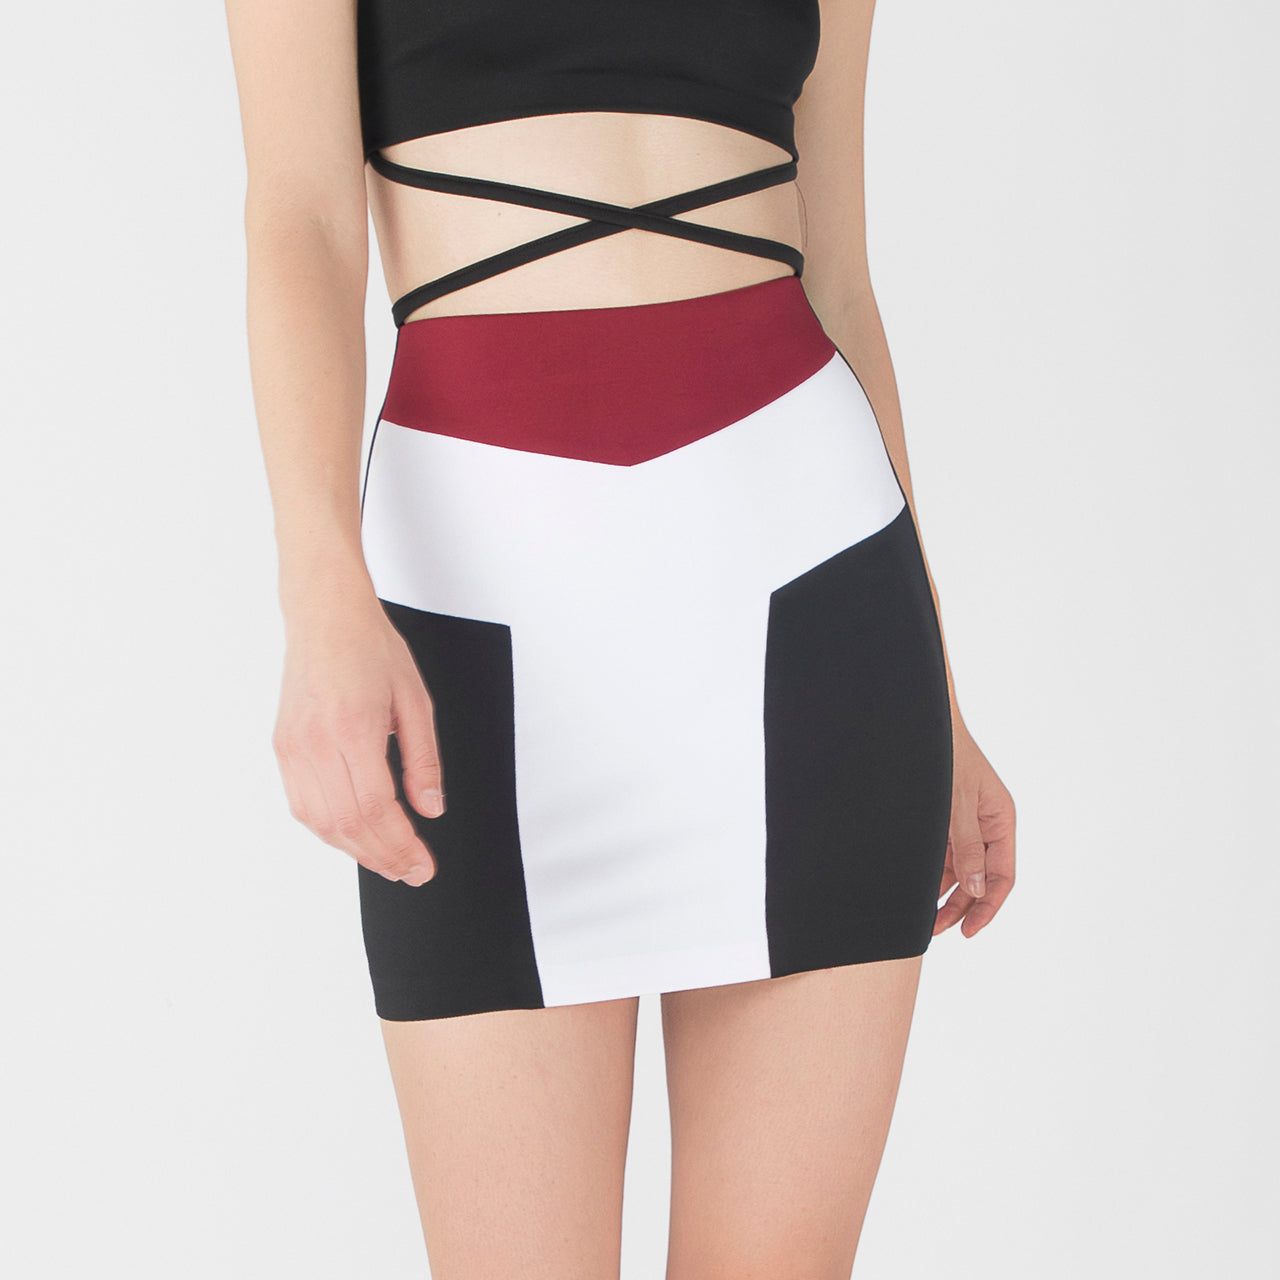 COLOURBLOCK MUSKÉ SKIRT